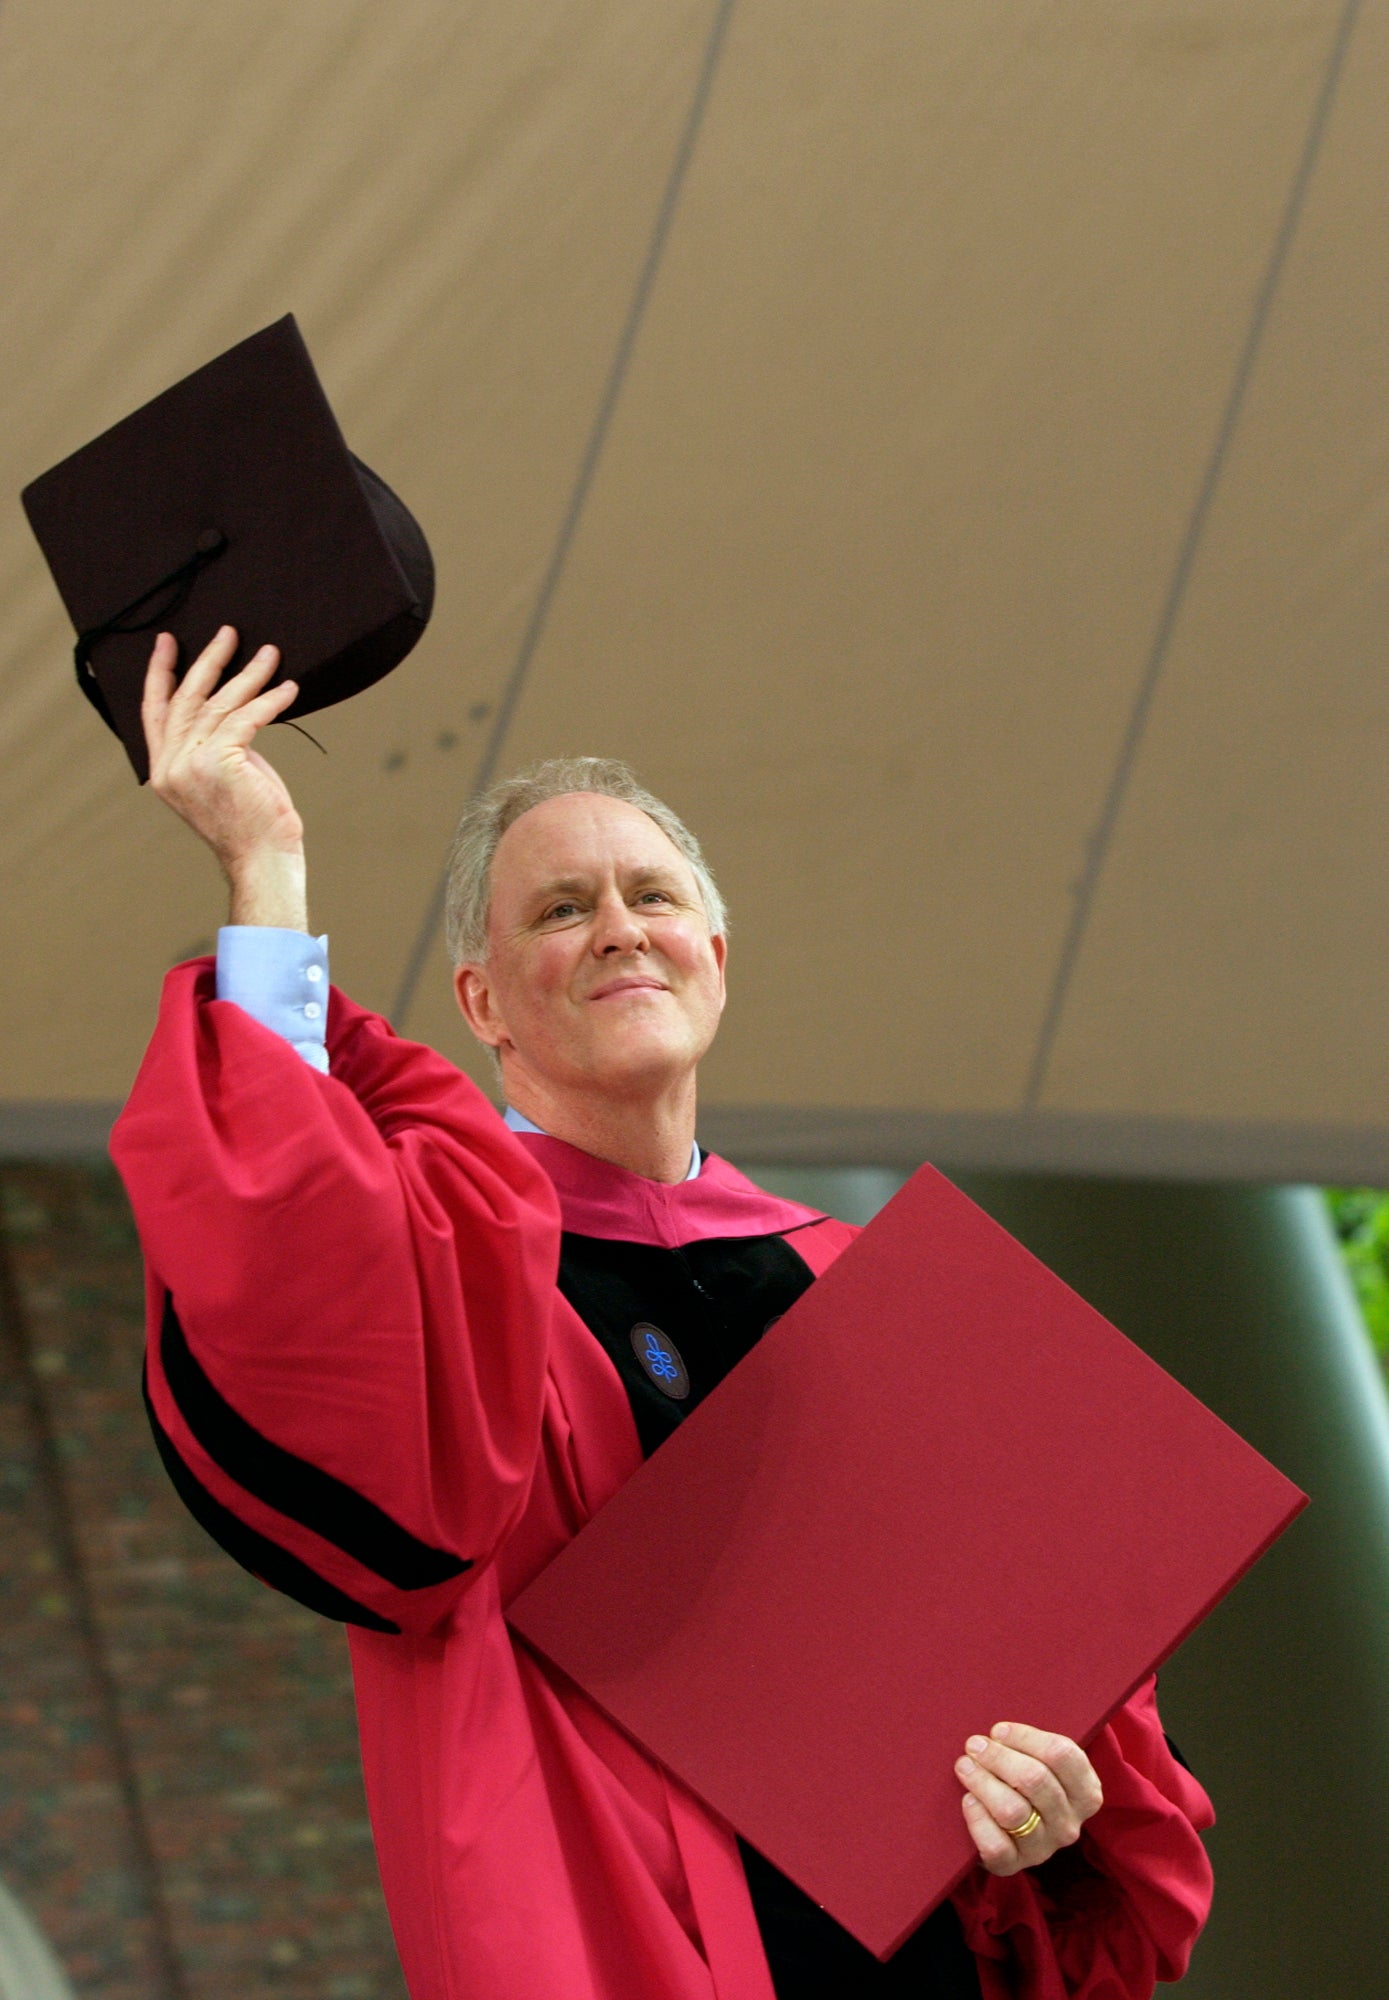 John Lithgow holding up his cap while wearing a gown